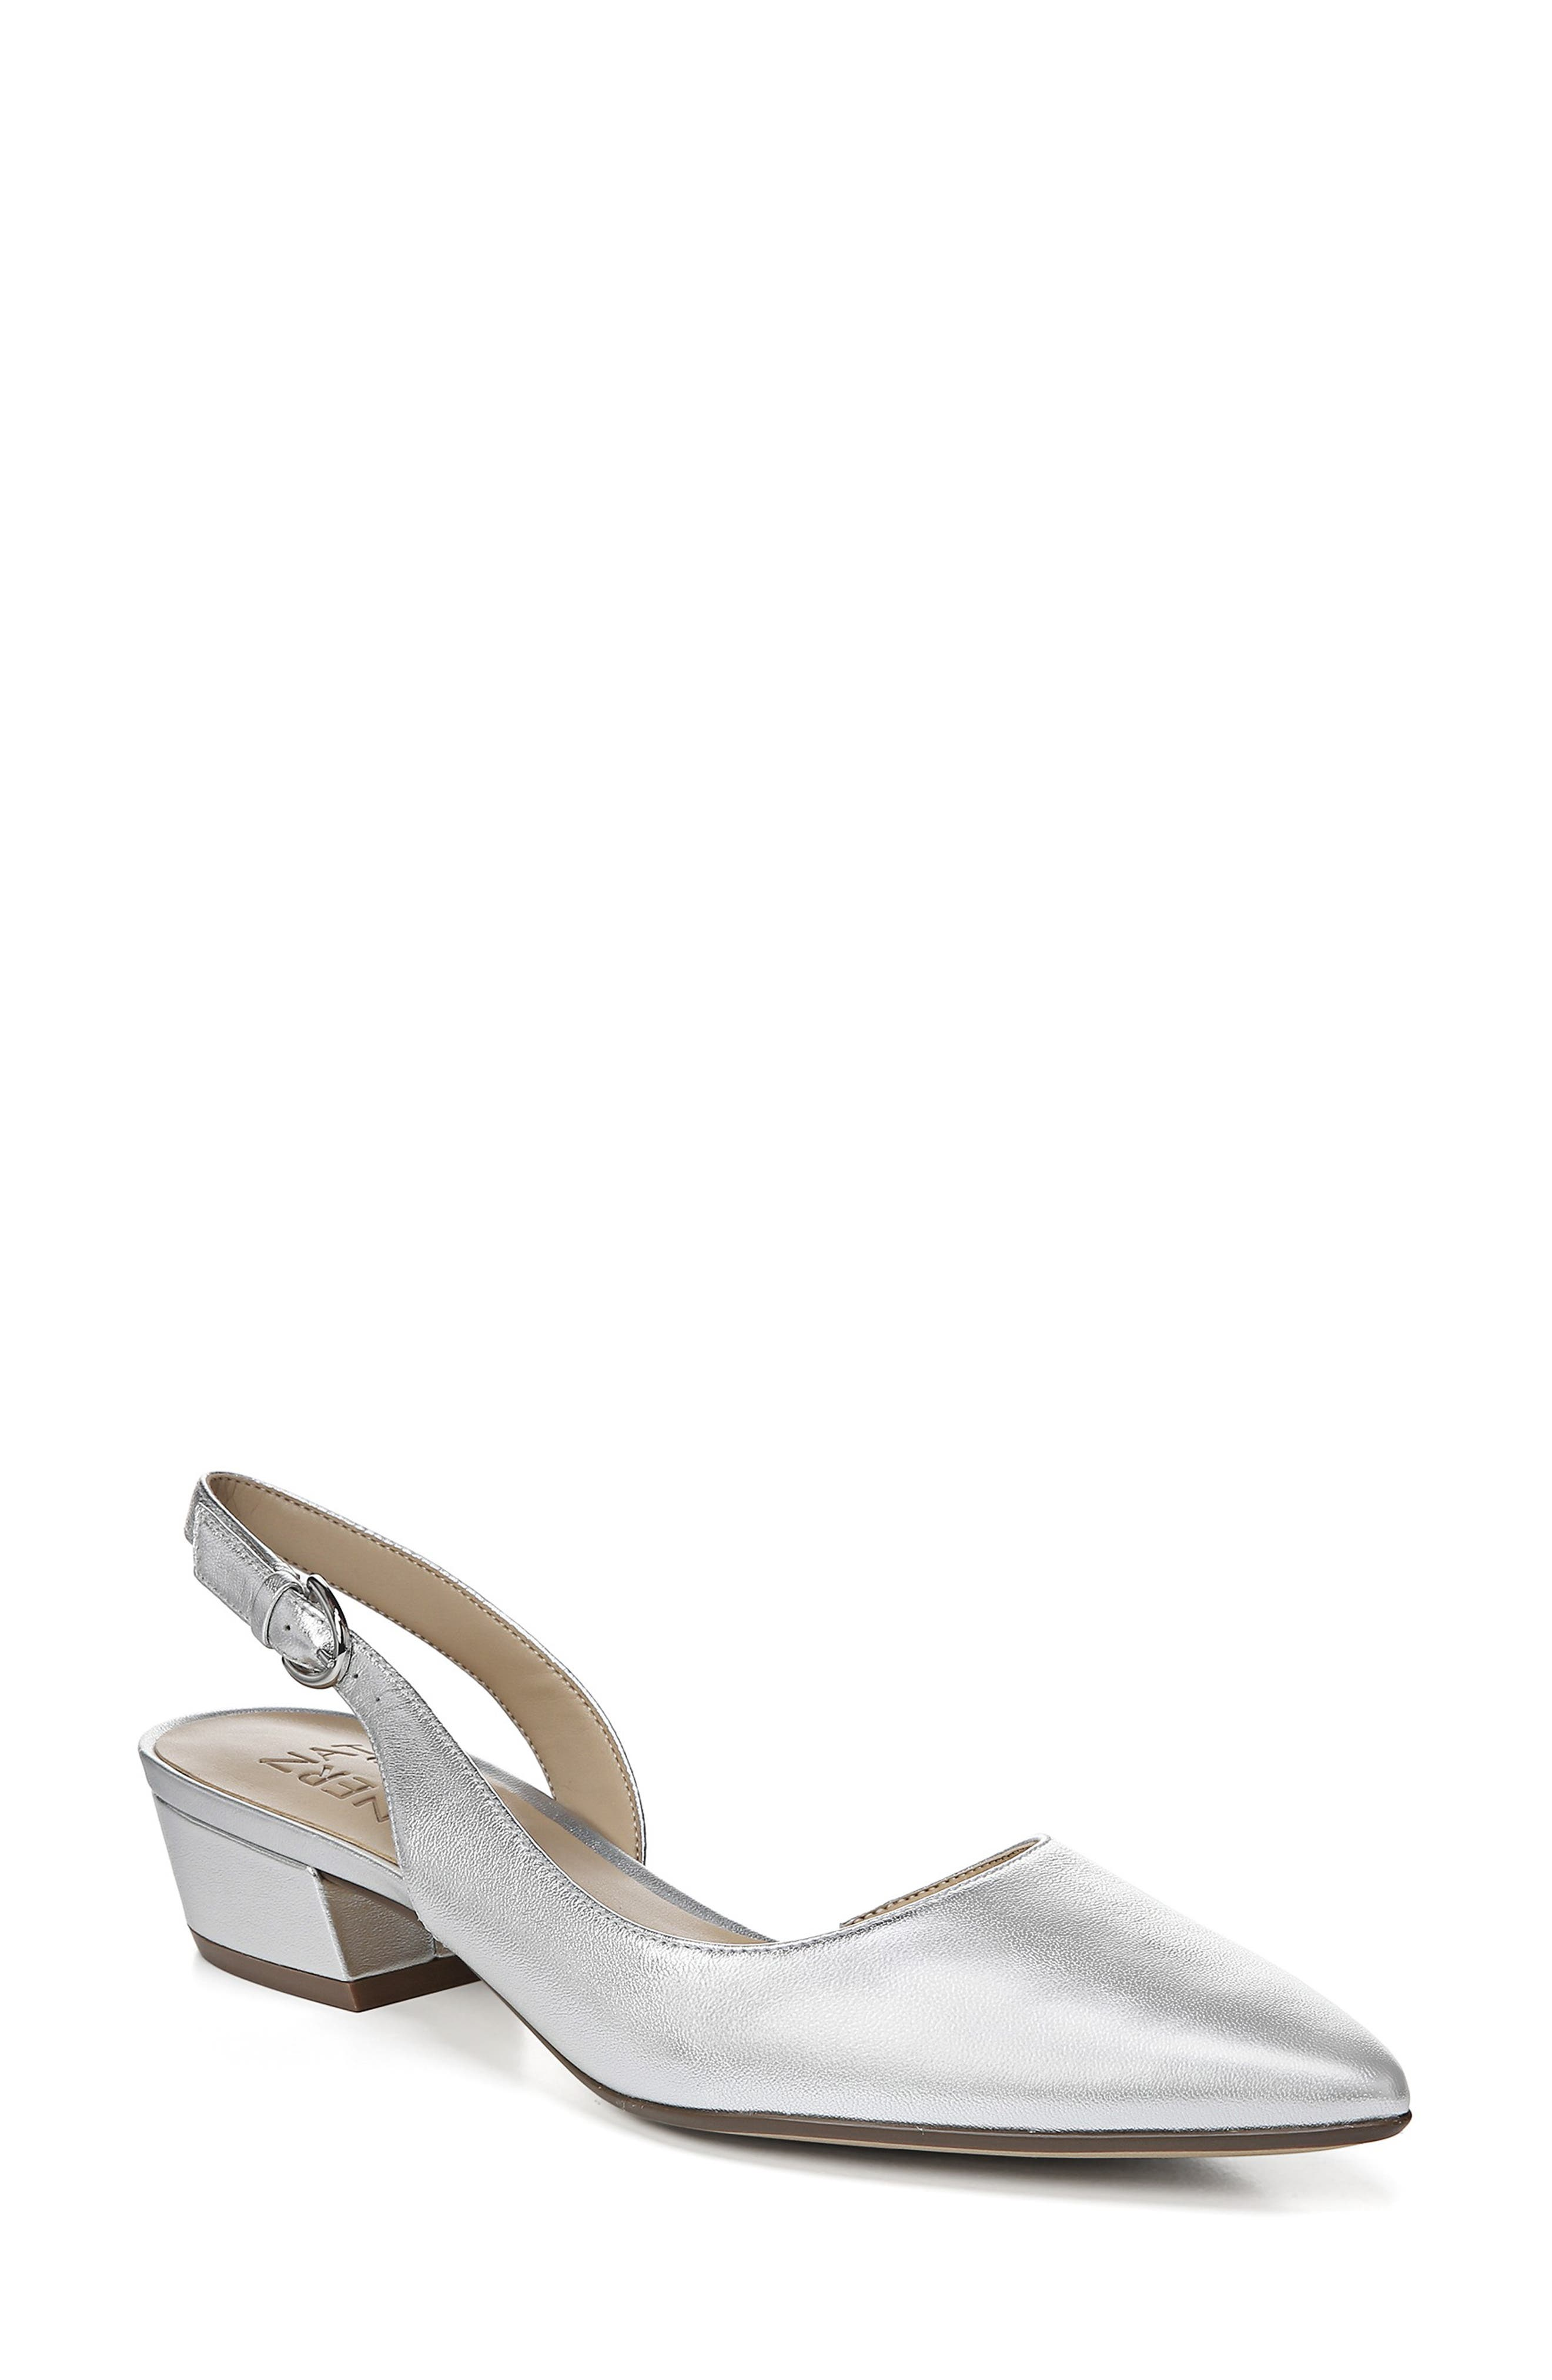 Naturalizer Banks Pump, Grey